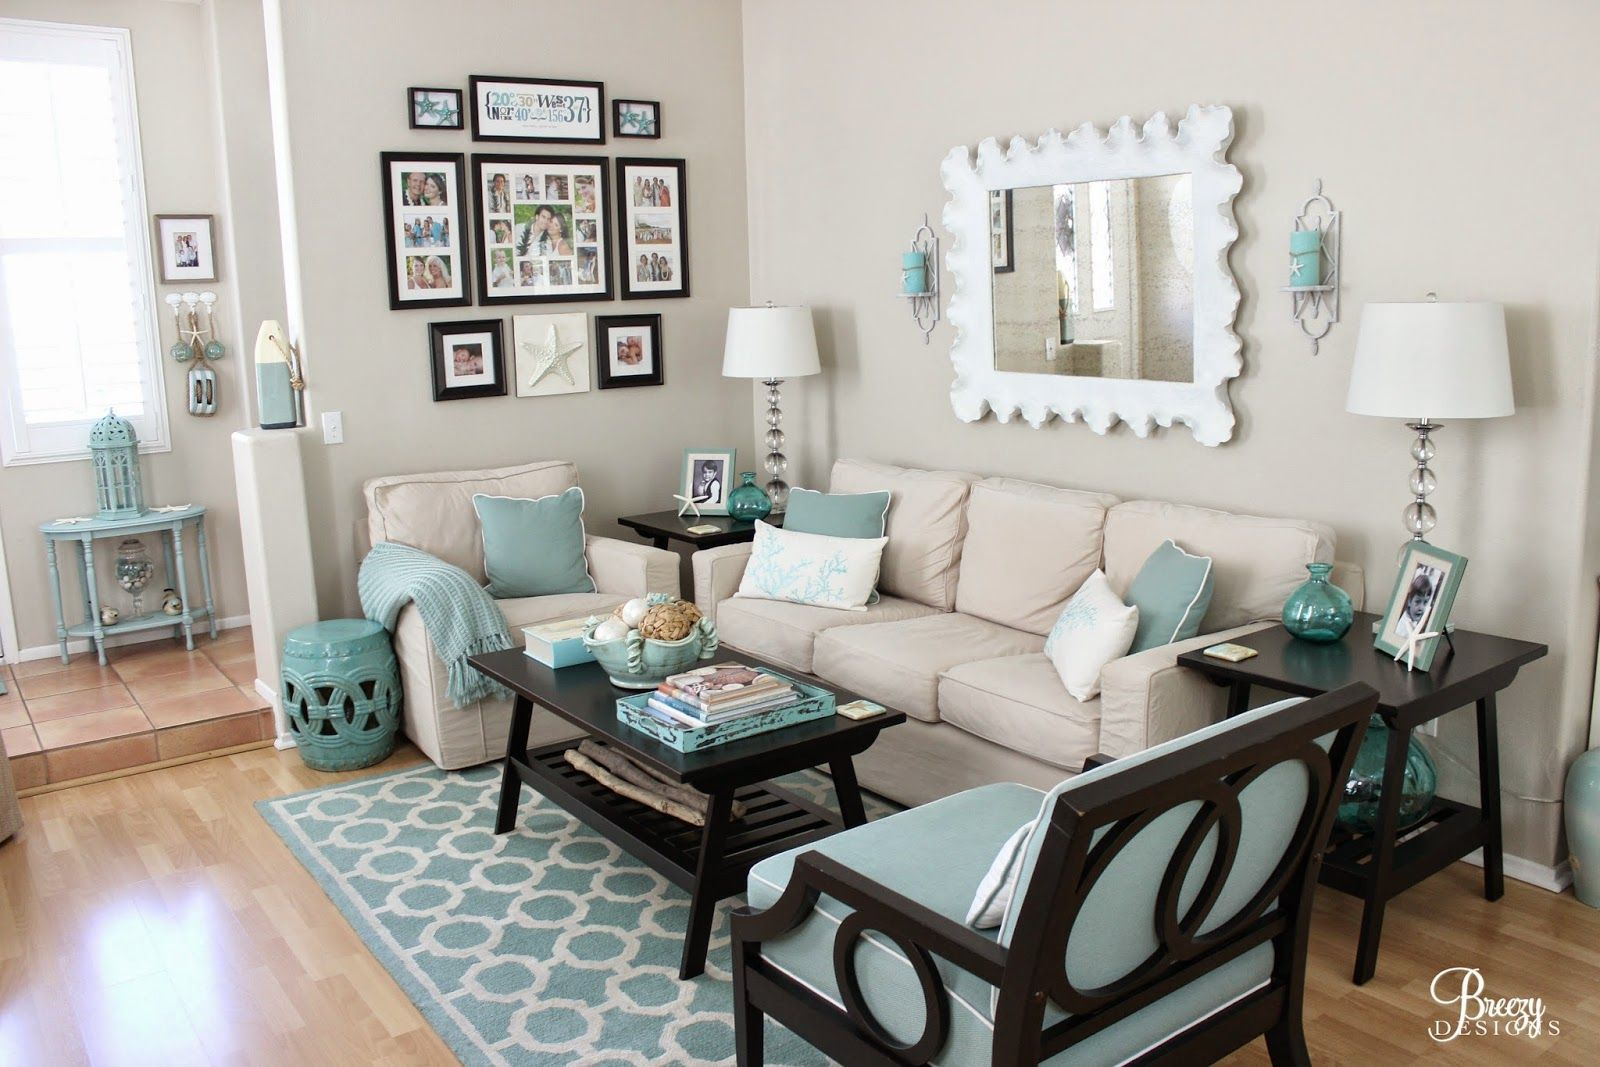 Living Room Decor Turquoise Furniture Outlet Guest Blogger Breezy From Designs Lovely Rooms Coastal